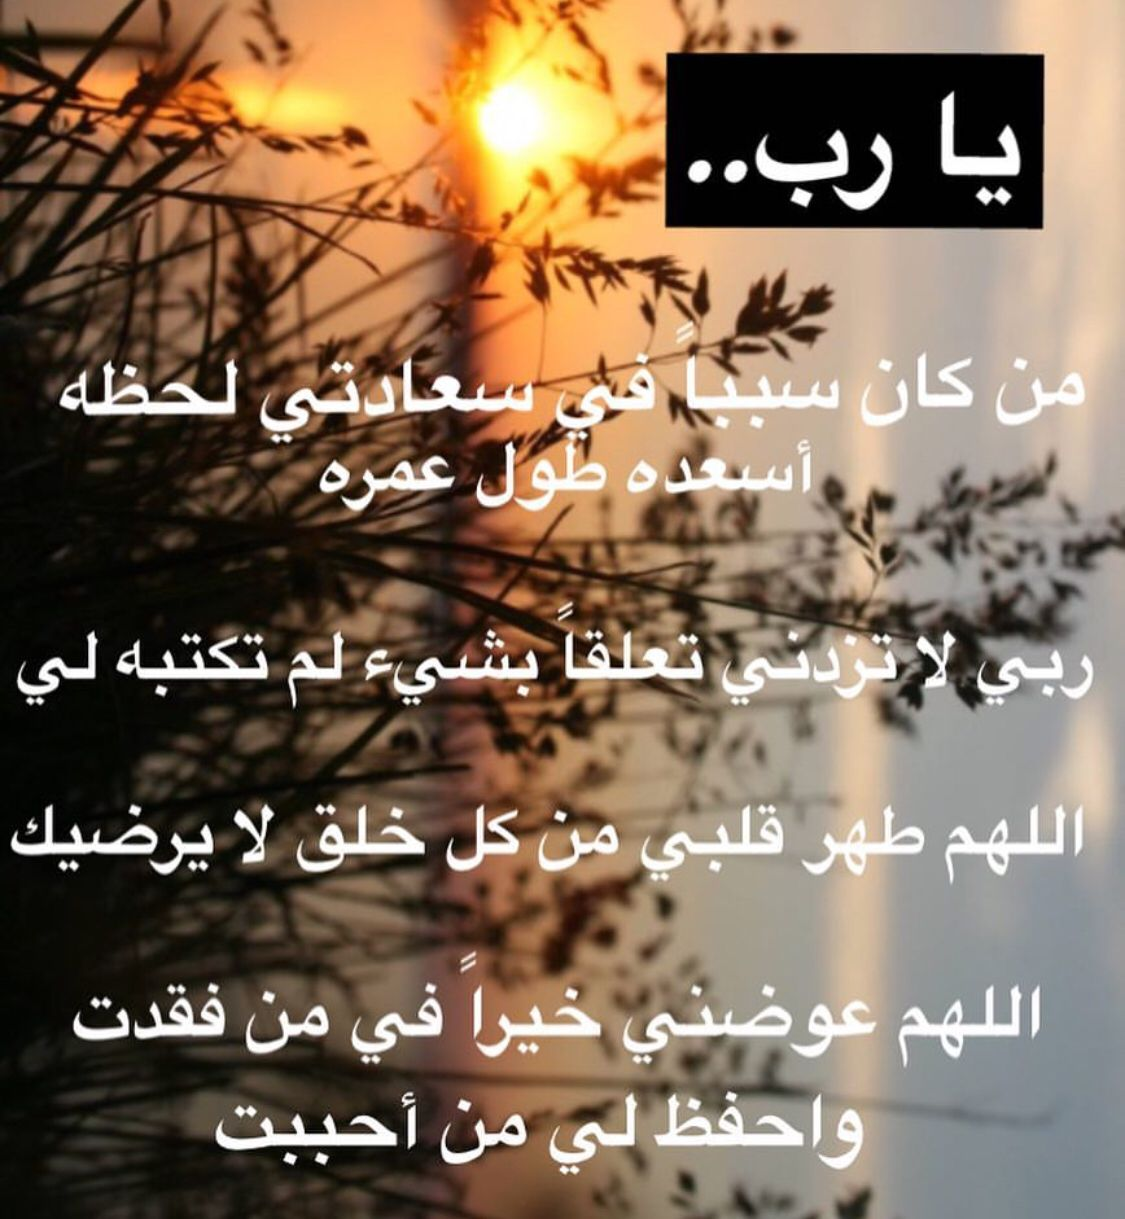 Pin By صورة و كلمة On Duea دعاء Movie Posters Poster Movies